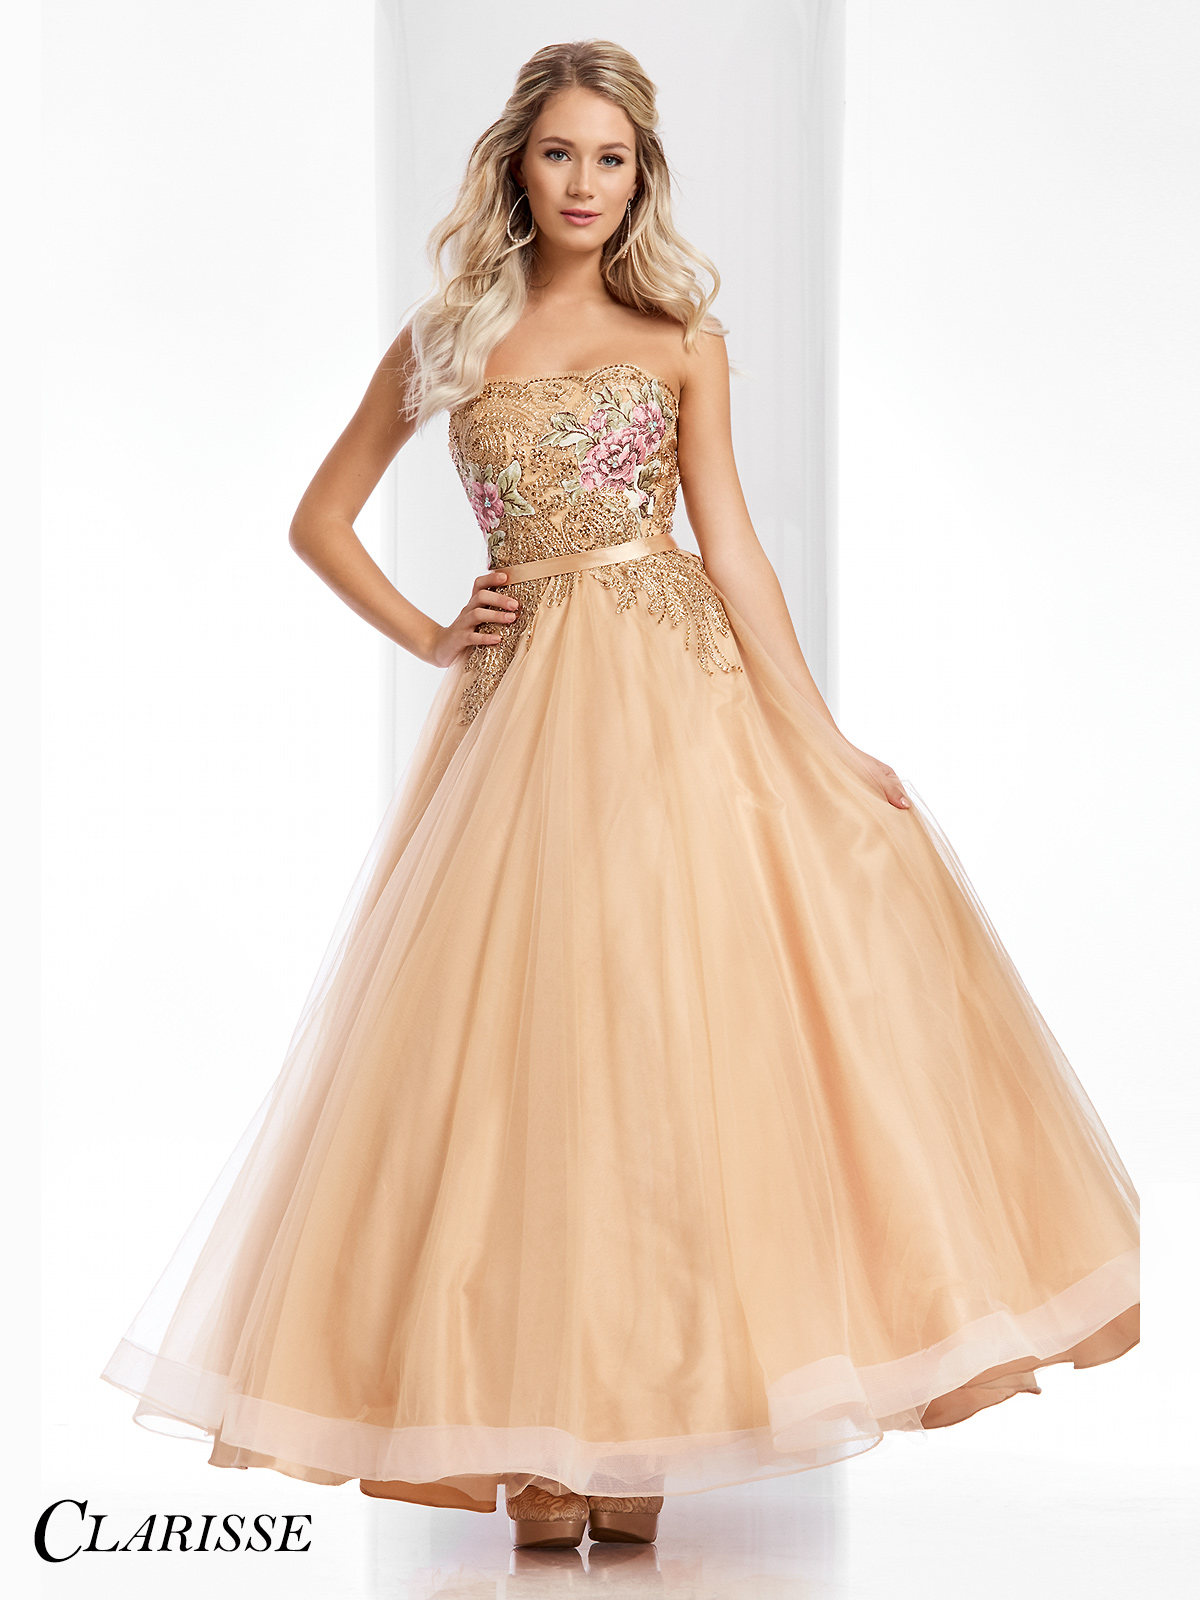 Clarisse Prom Dress 3010 | Promgirl.net